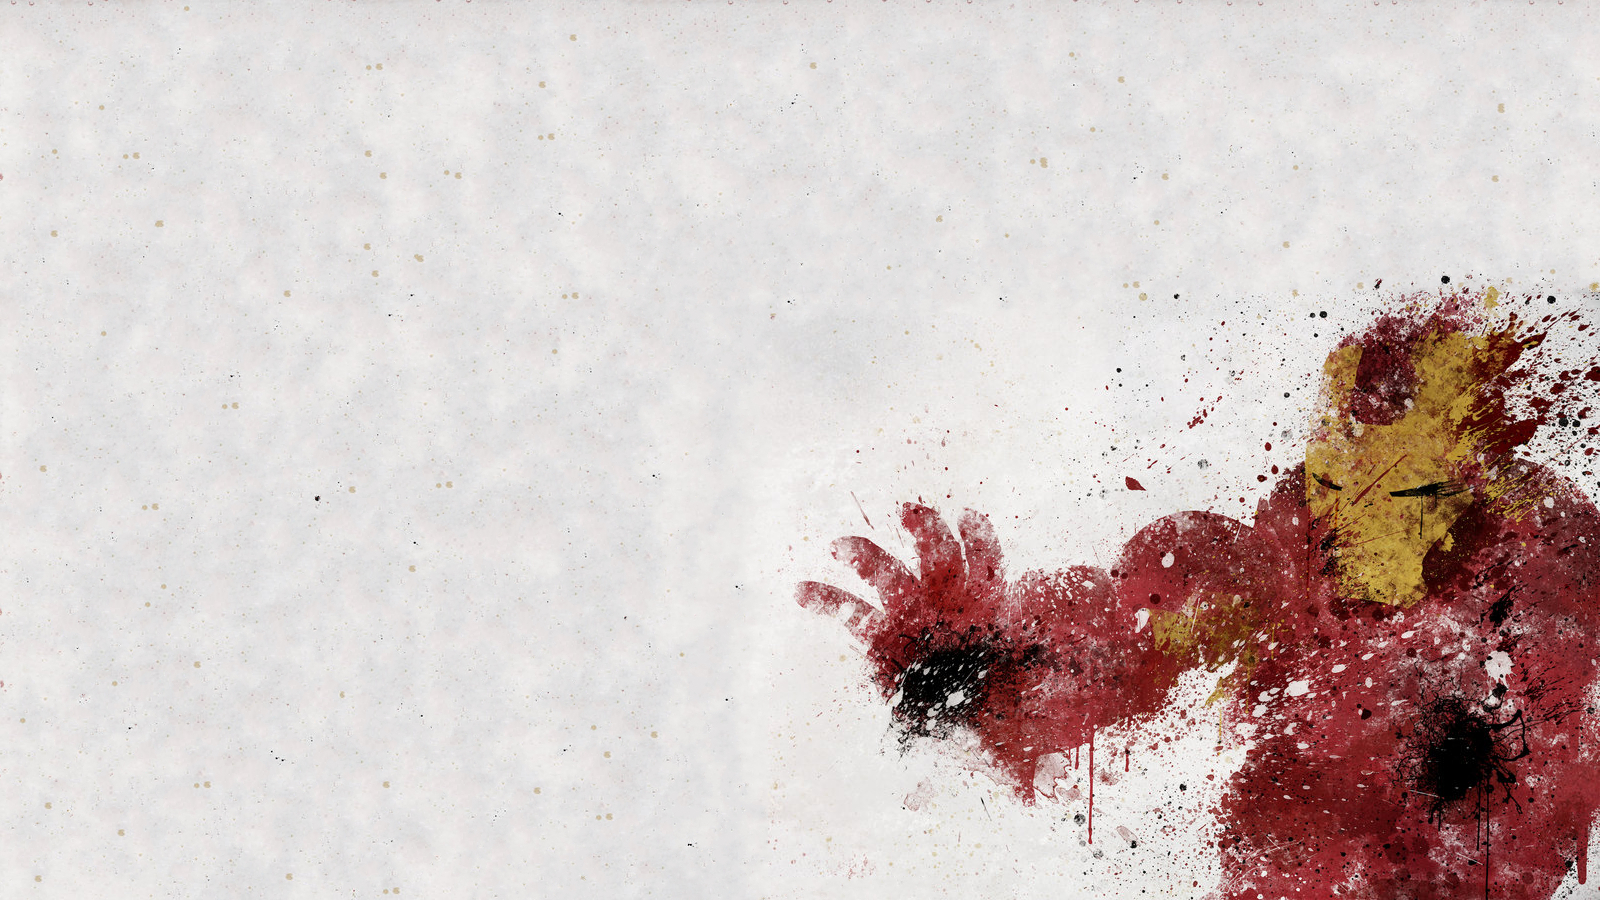 Iron Man Computer Wallpapers Desktop Backgrounds 1600x900 ID 1600x900